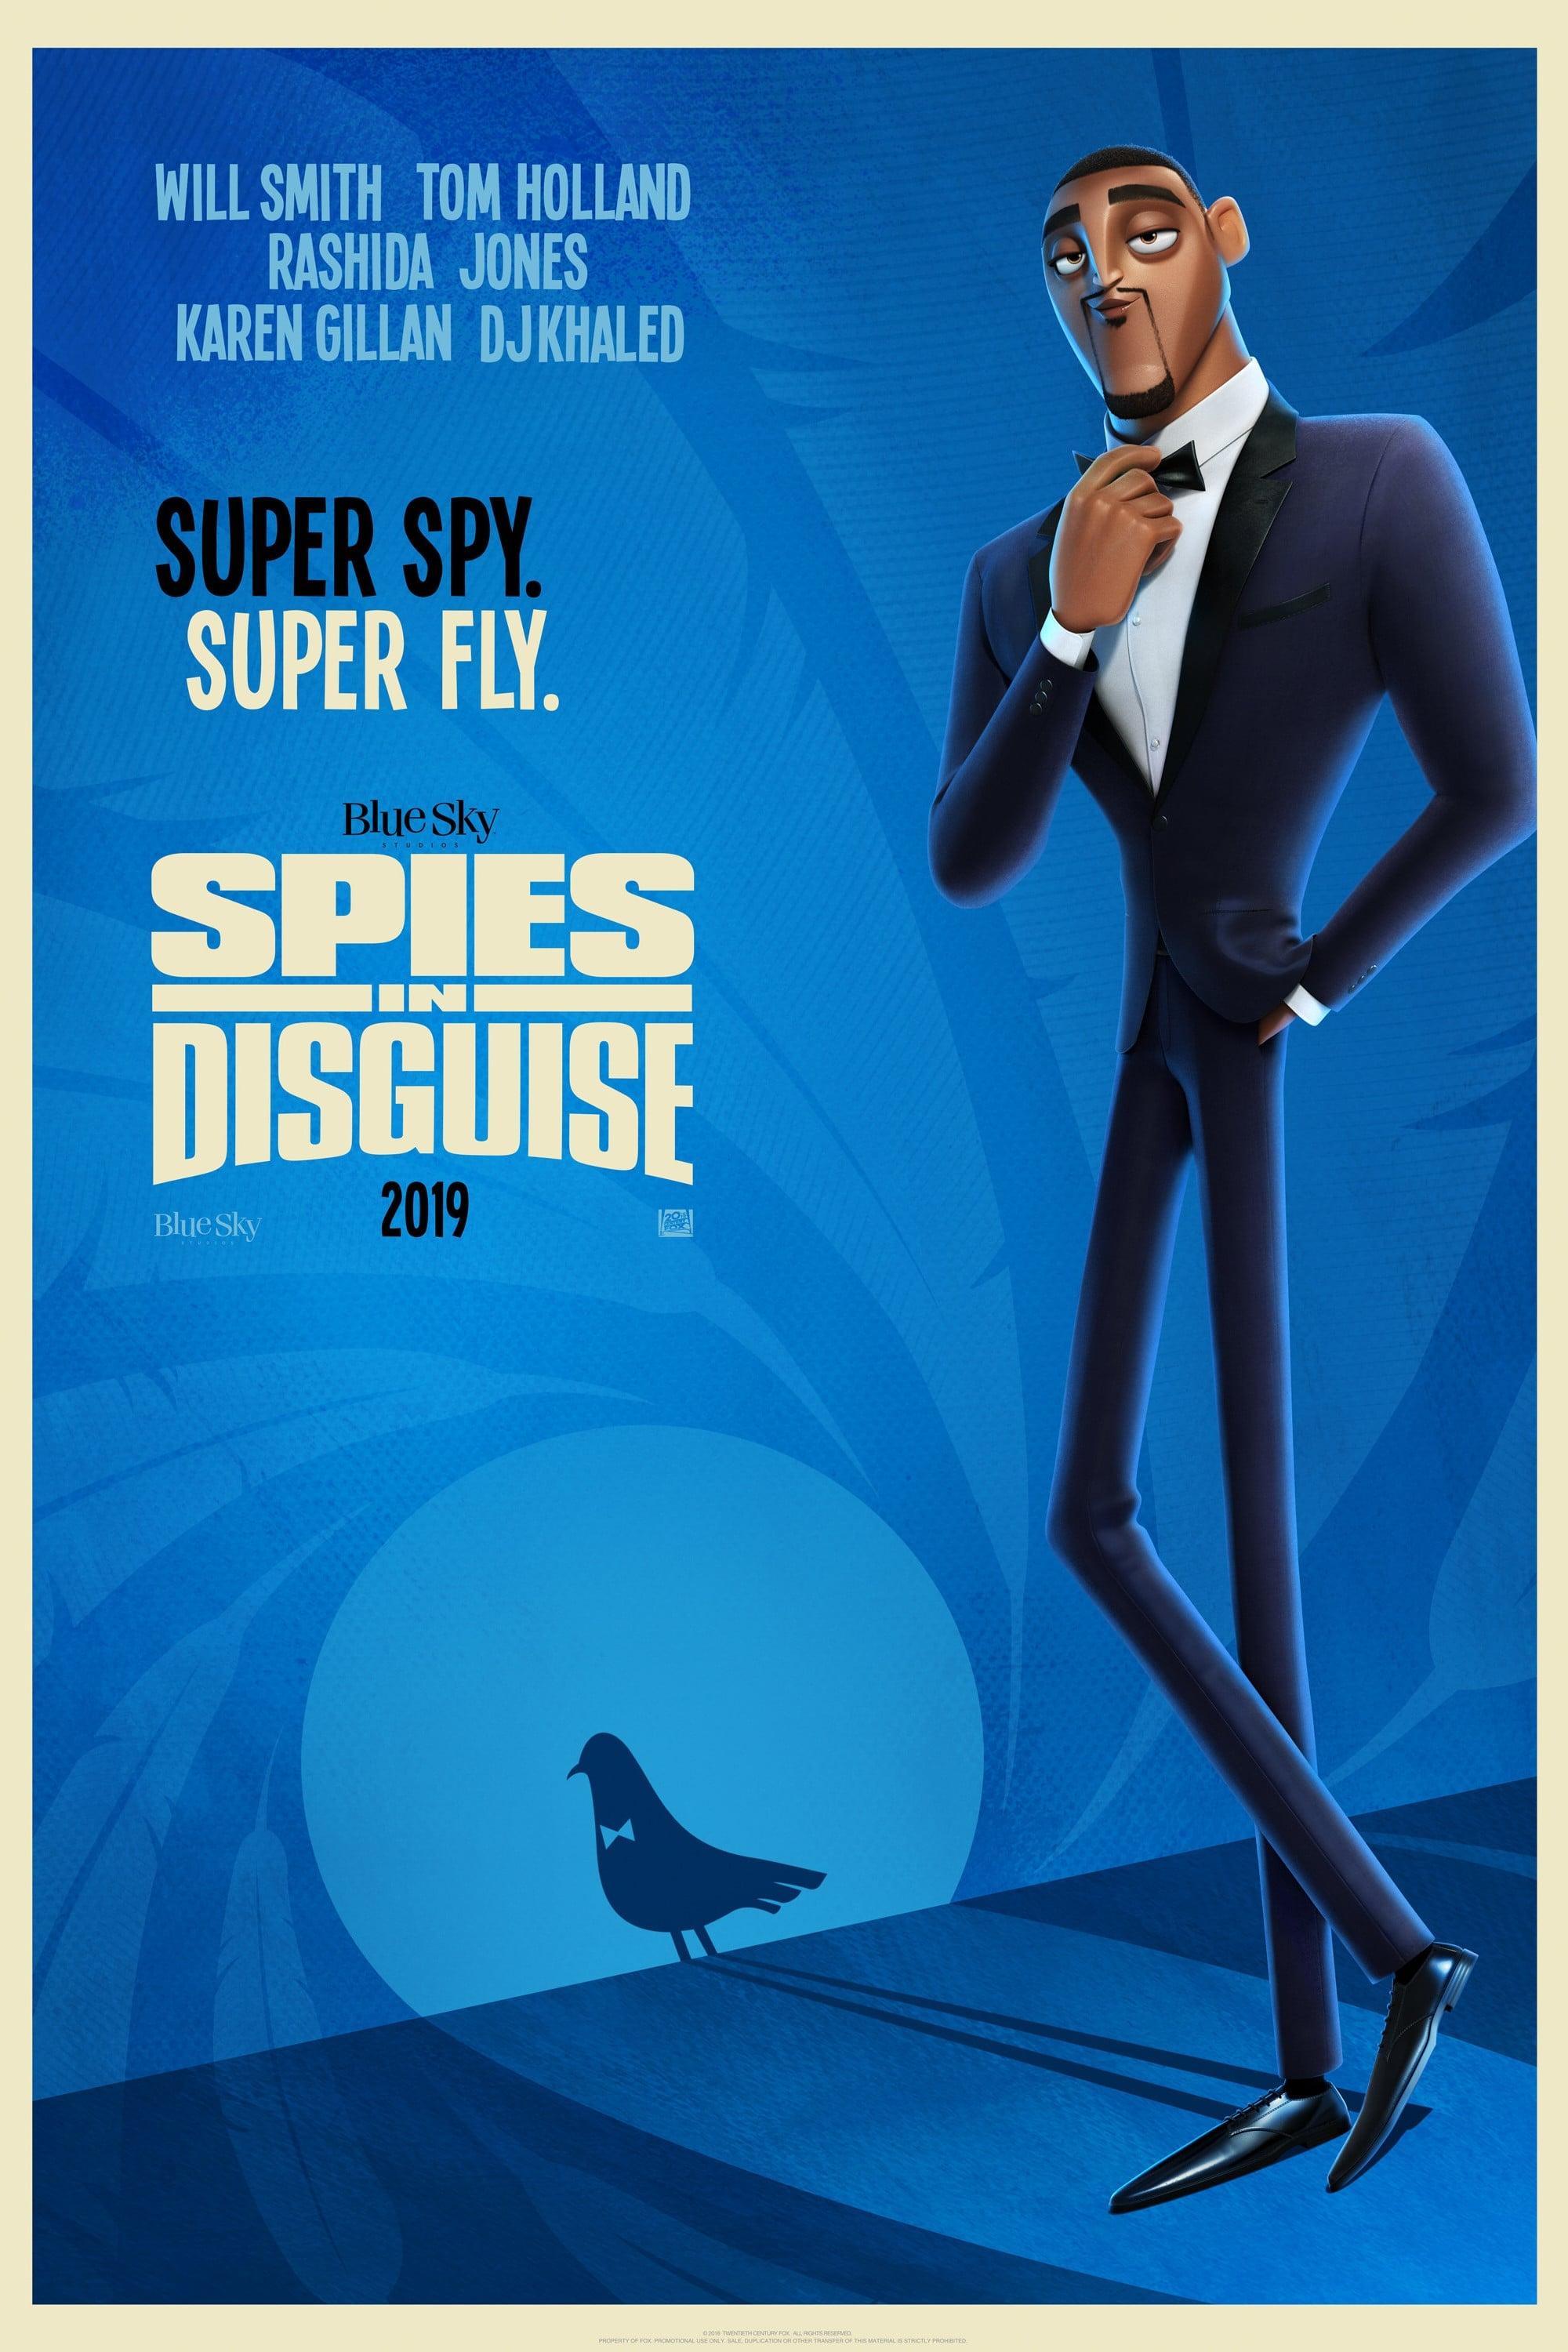 Poster and image movie Film Spies in Disguise - Spies in Disguise 2019